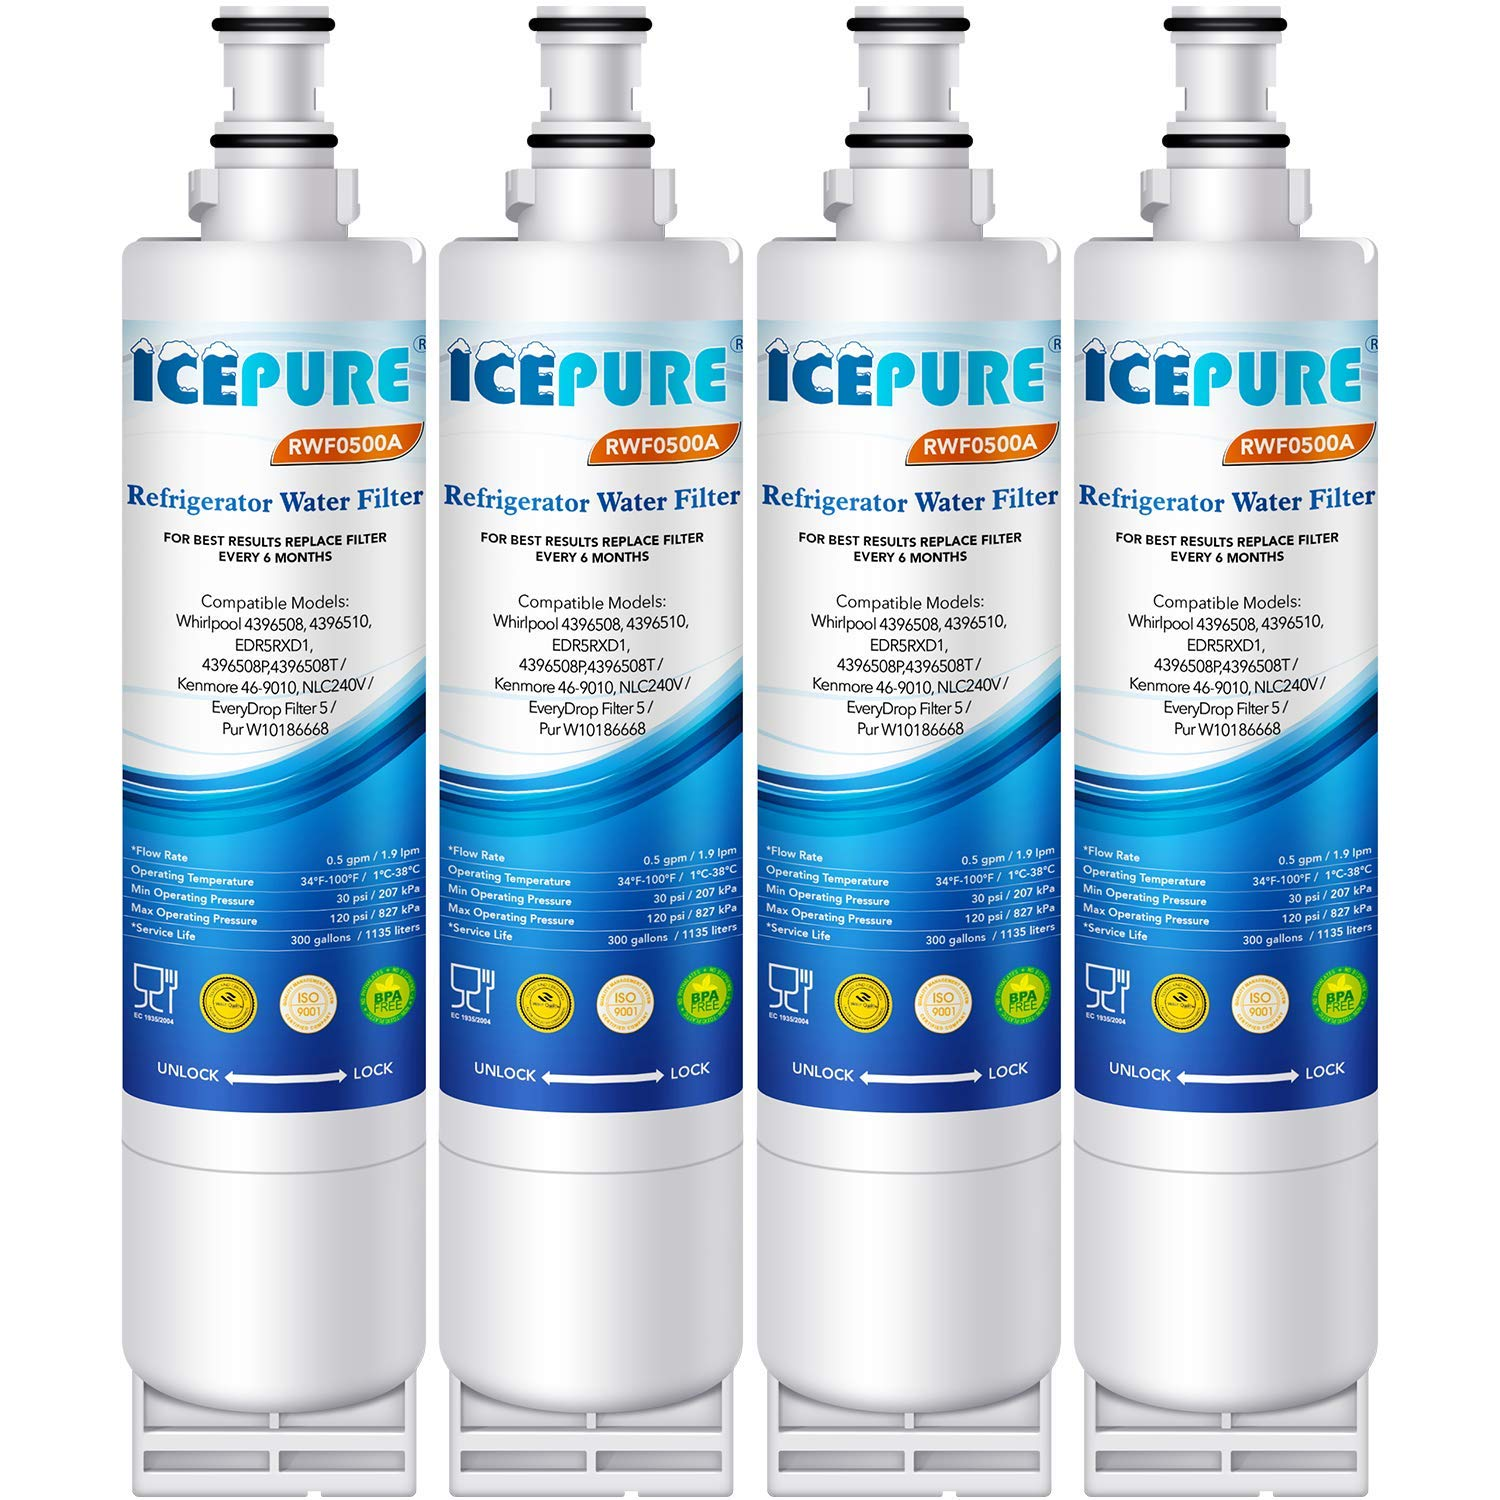 ICEPURE 4396508 Refrigerator Water Filter Compatible with Whirlpool  4396508, 4396510, edr5rxd1, filter 5, 4392857, NL240V, WFL400, 9010 filter,  wf285,